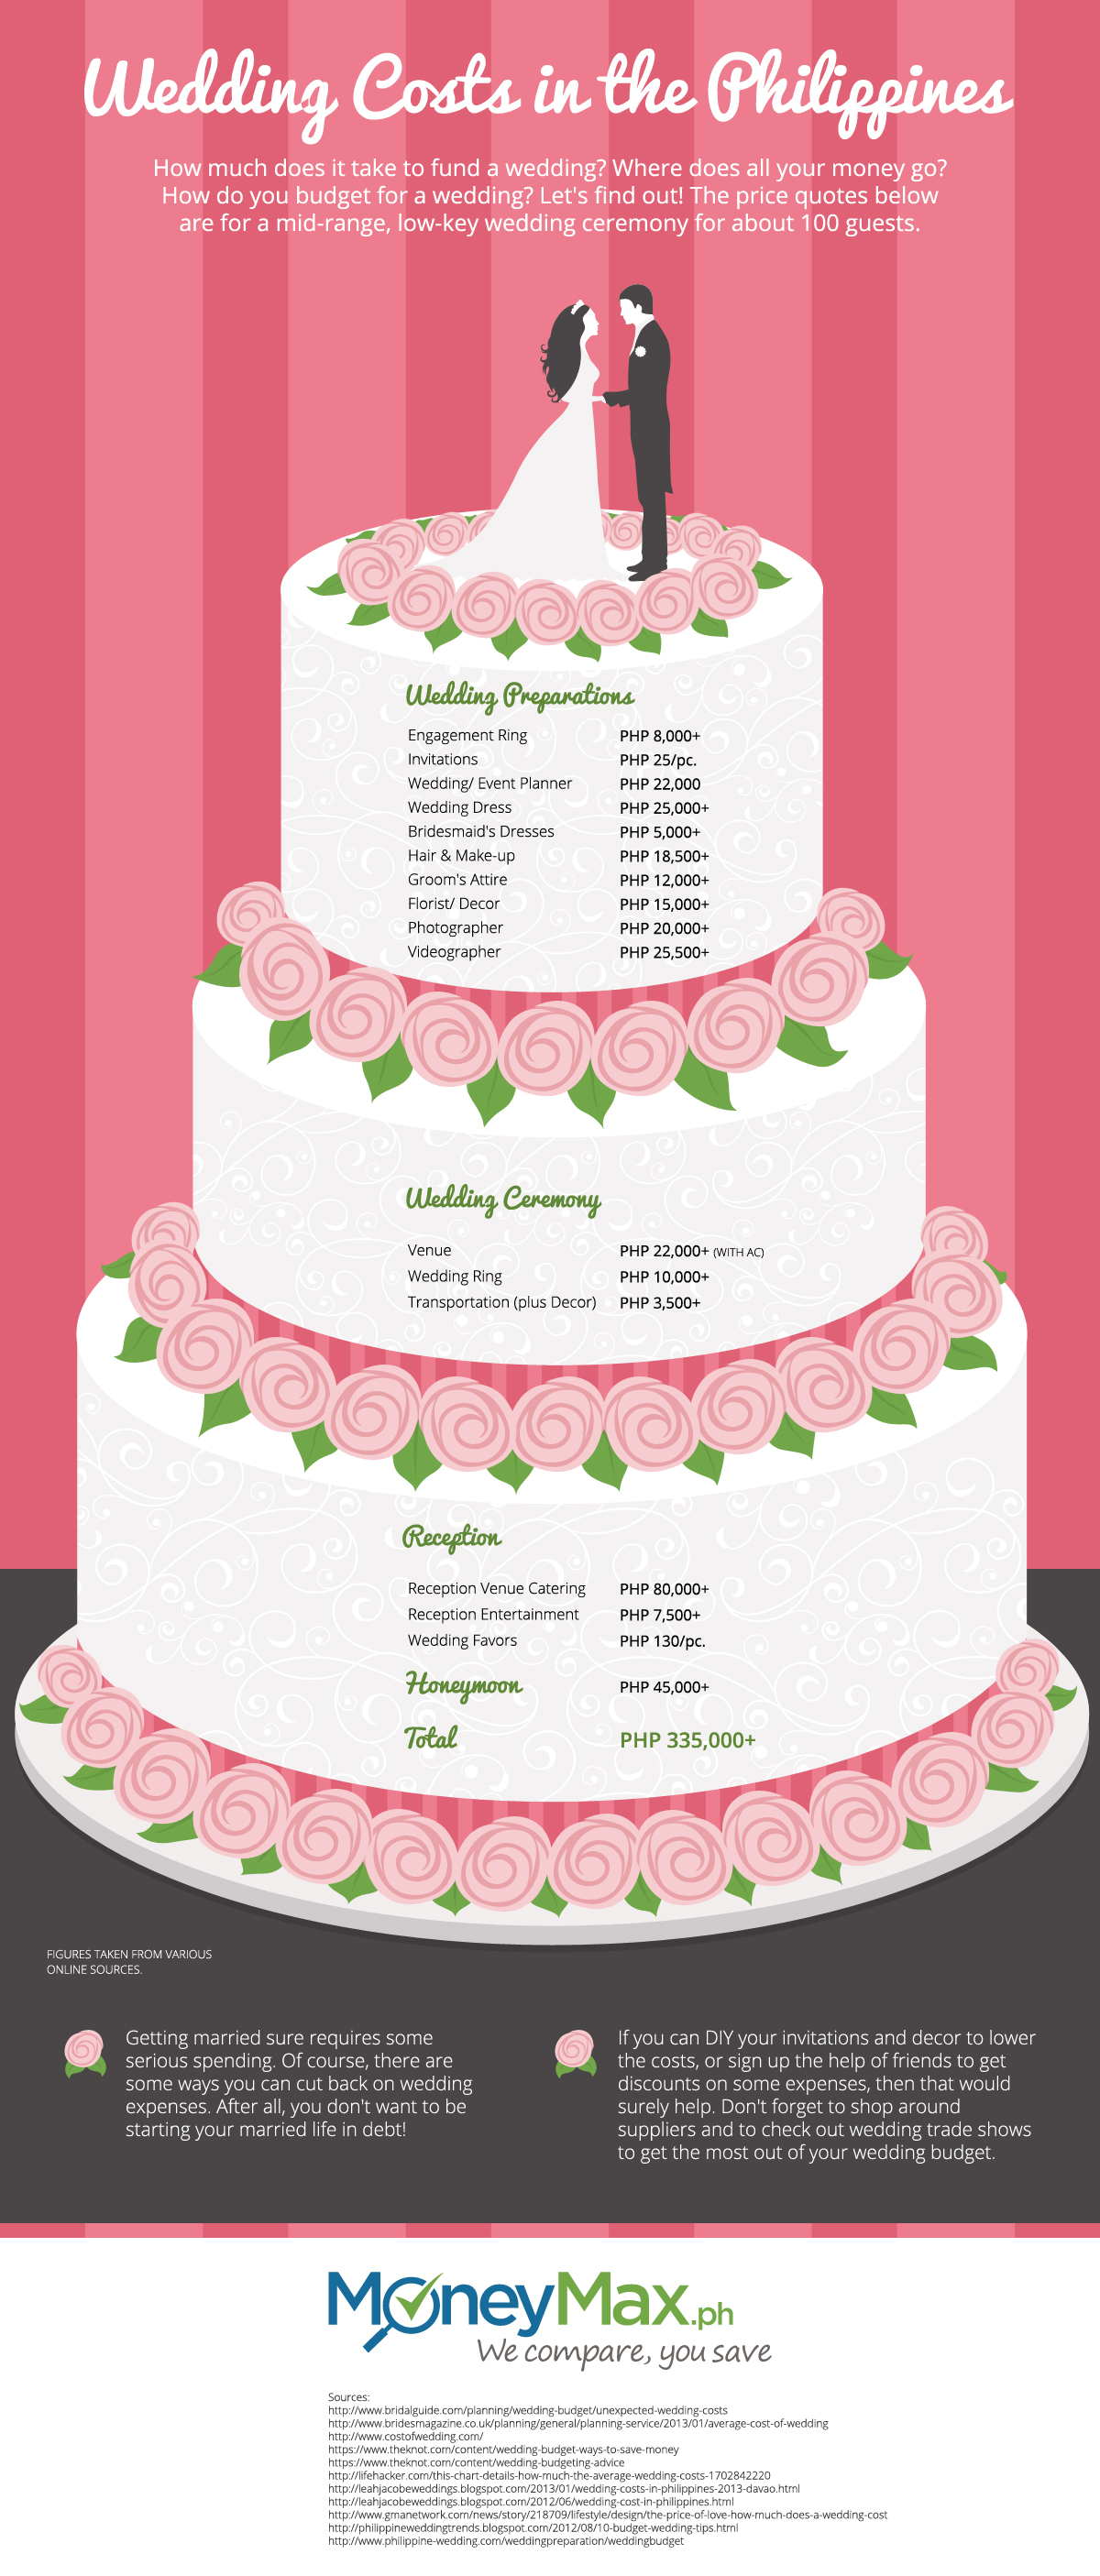 How Much Does A Wedding Cost in the Philippines? - Weddings in the ...